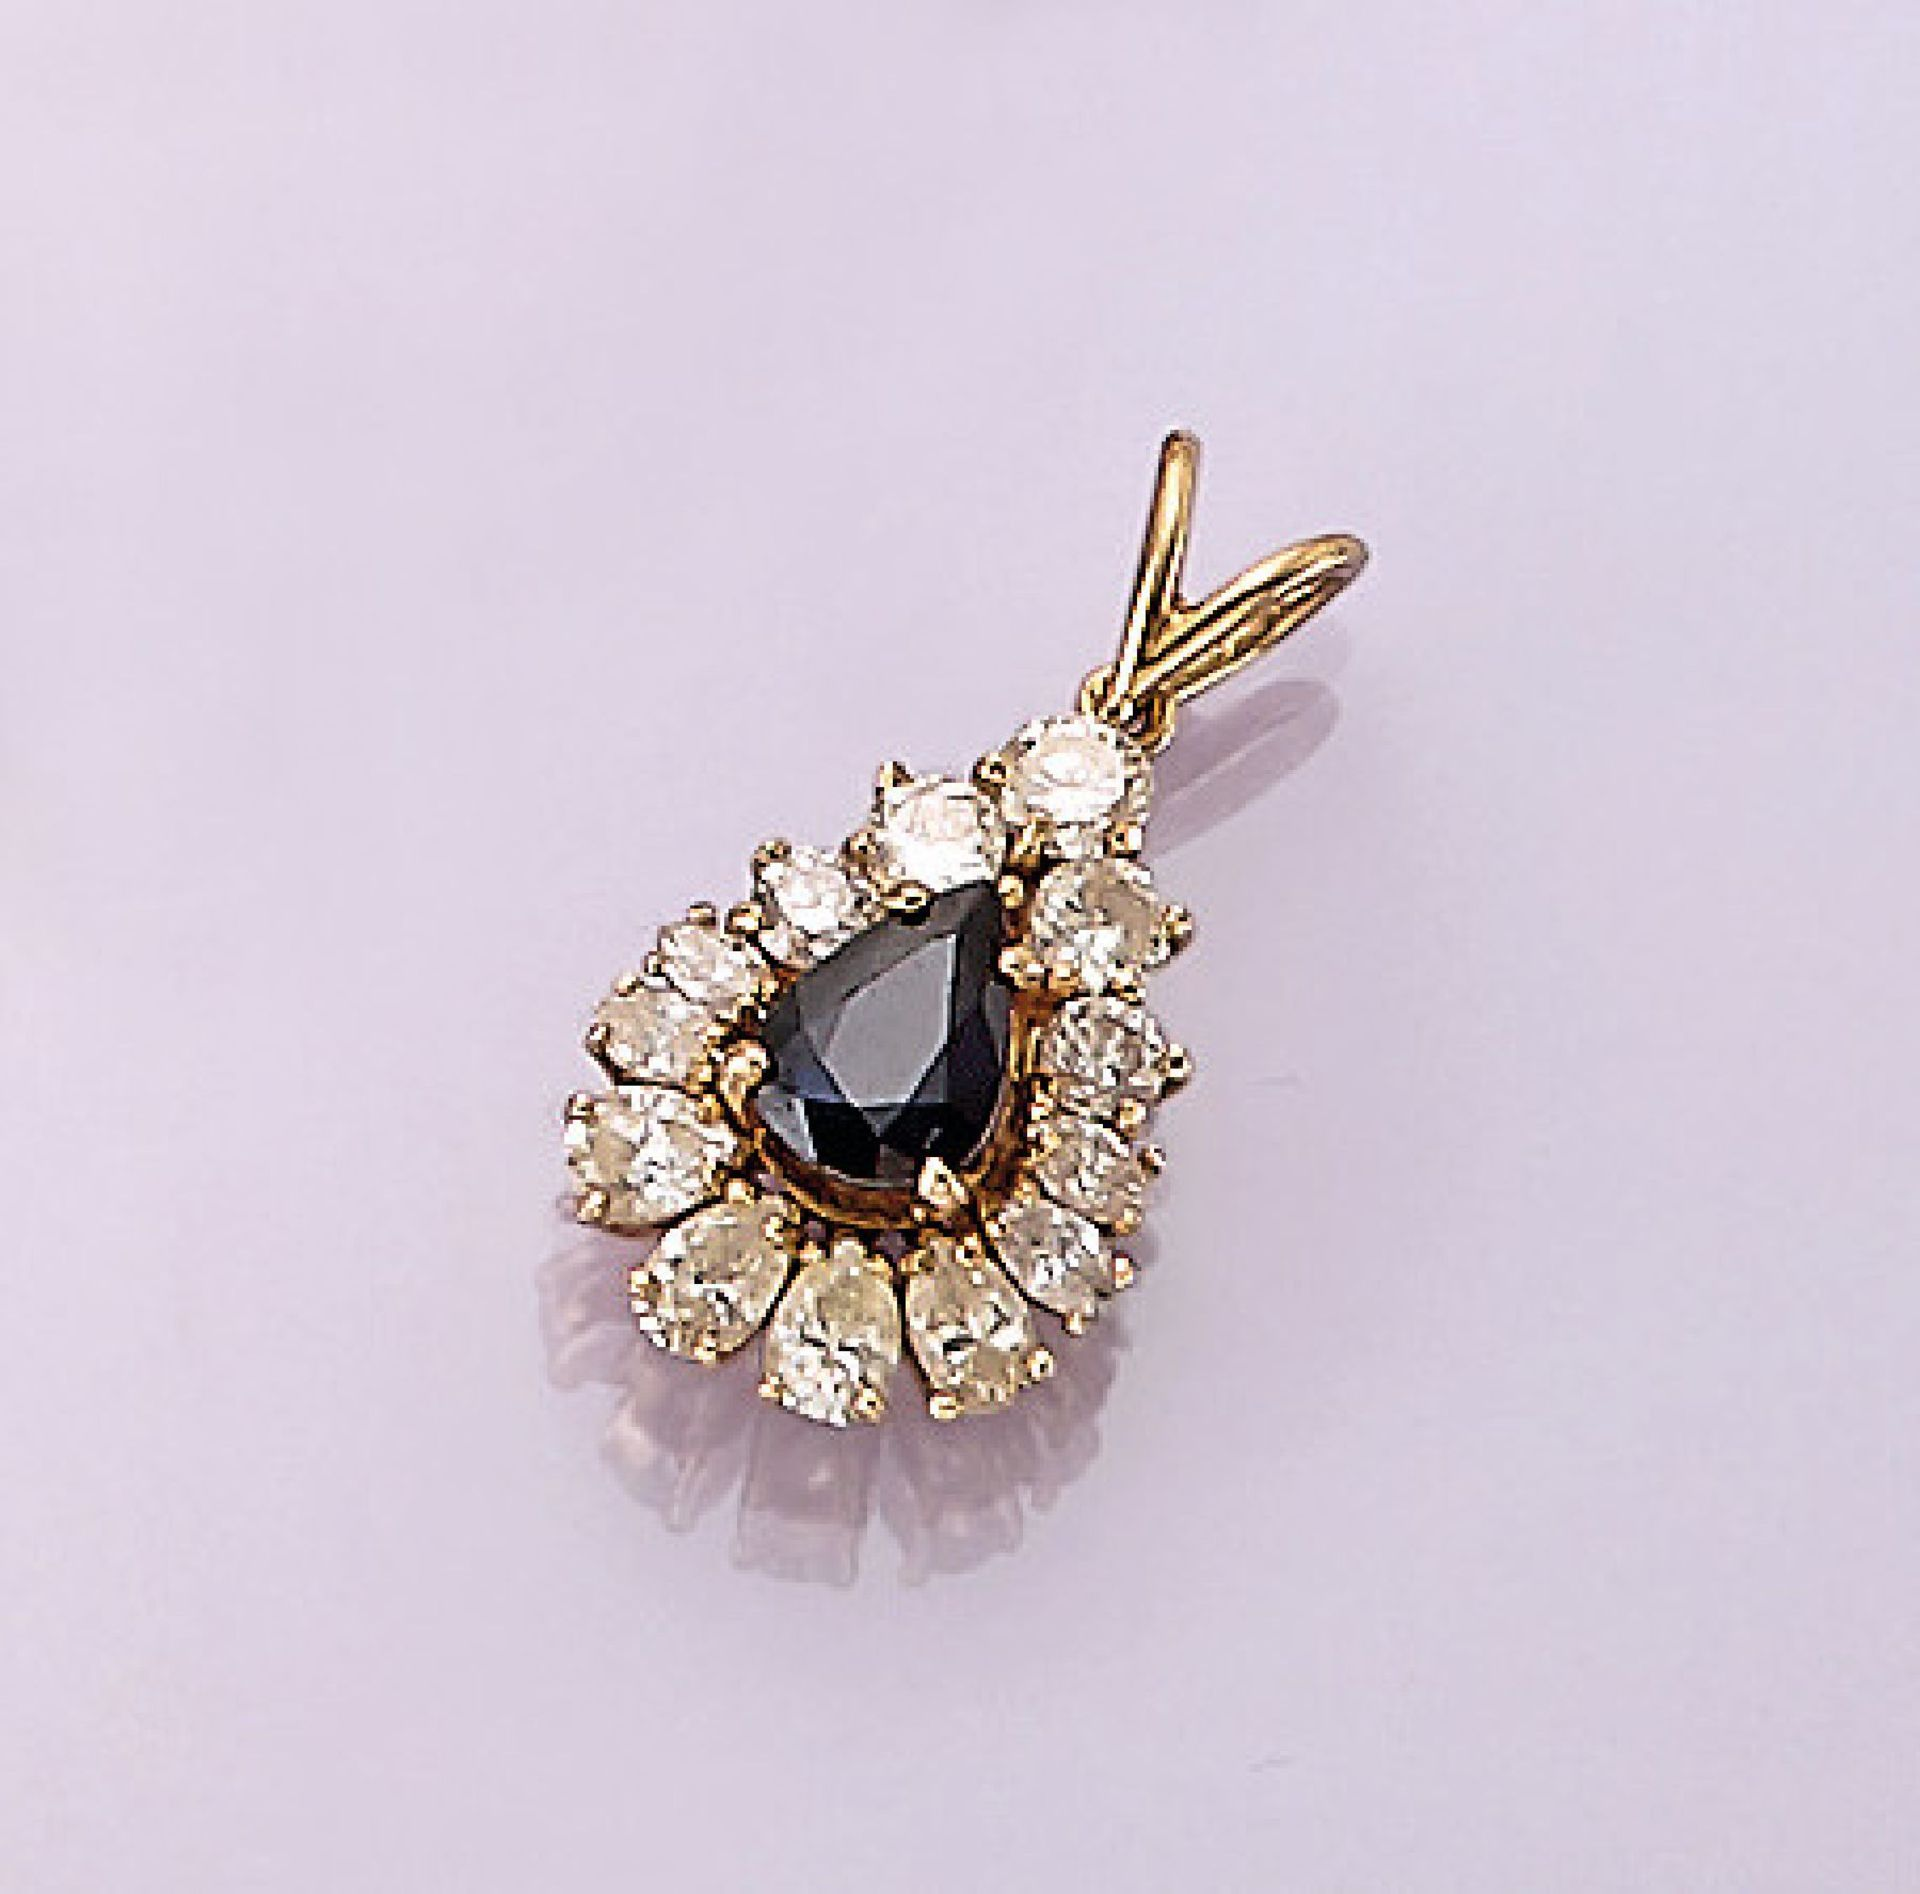 Los 31529 - 18 kt gold pendant with diamonds and sapphire , YG 750/000, centered pear shaped bevelled sapphire